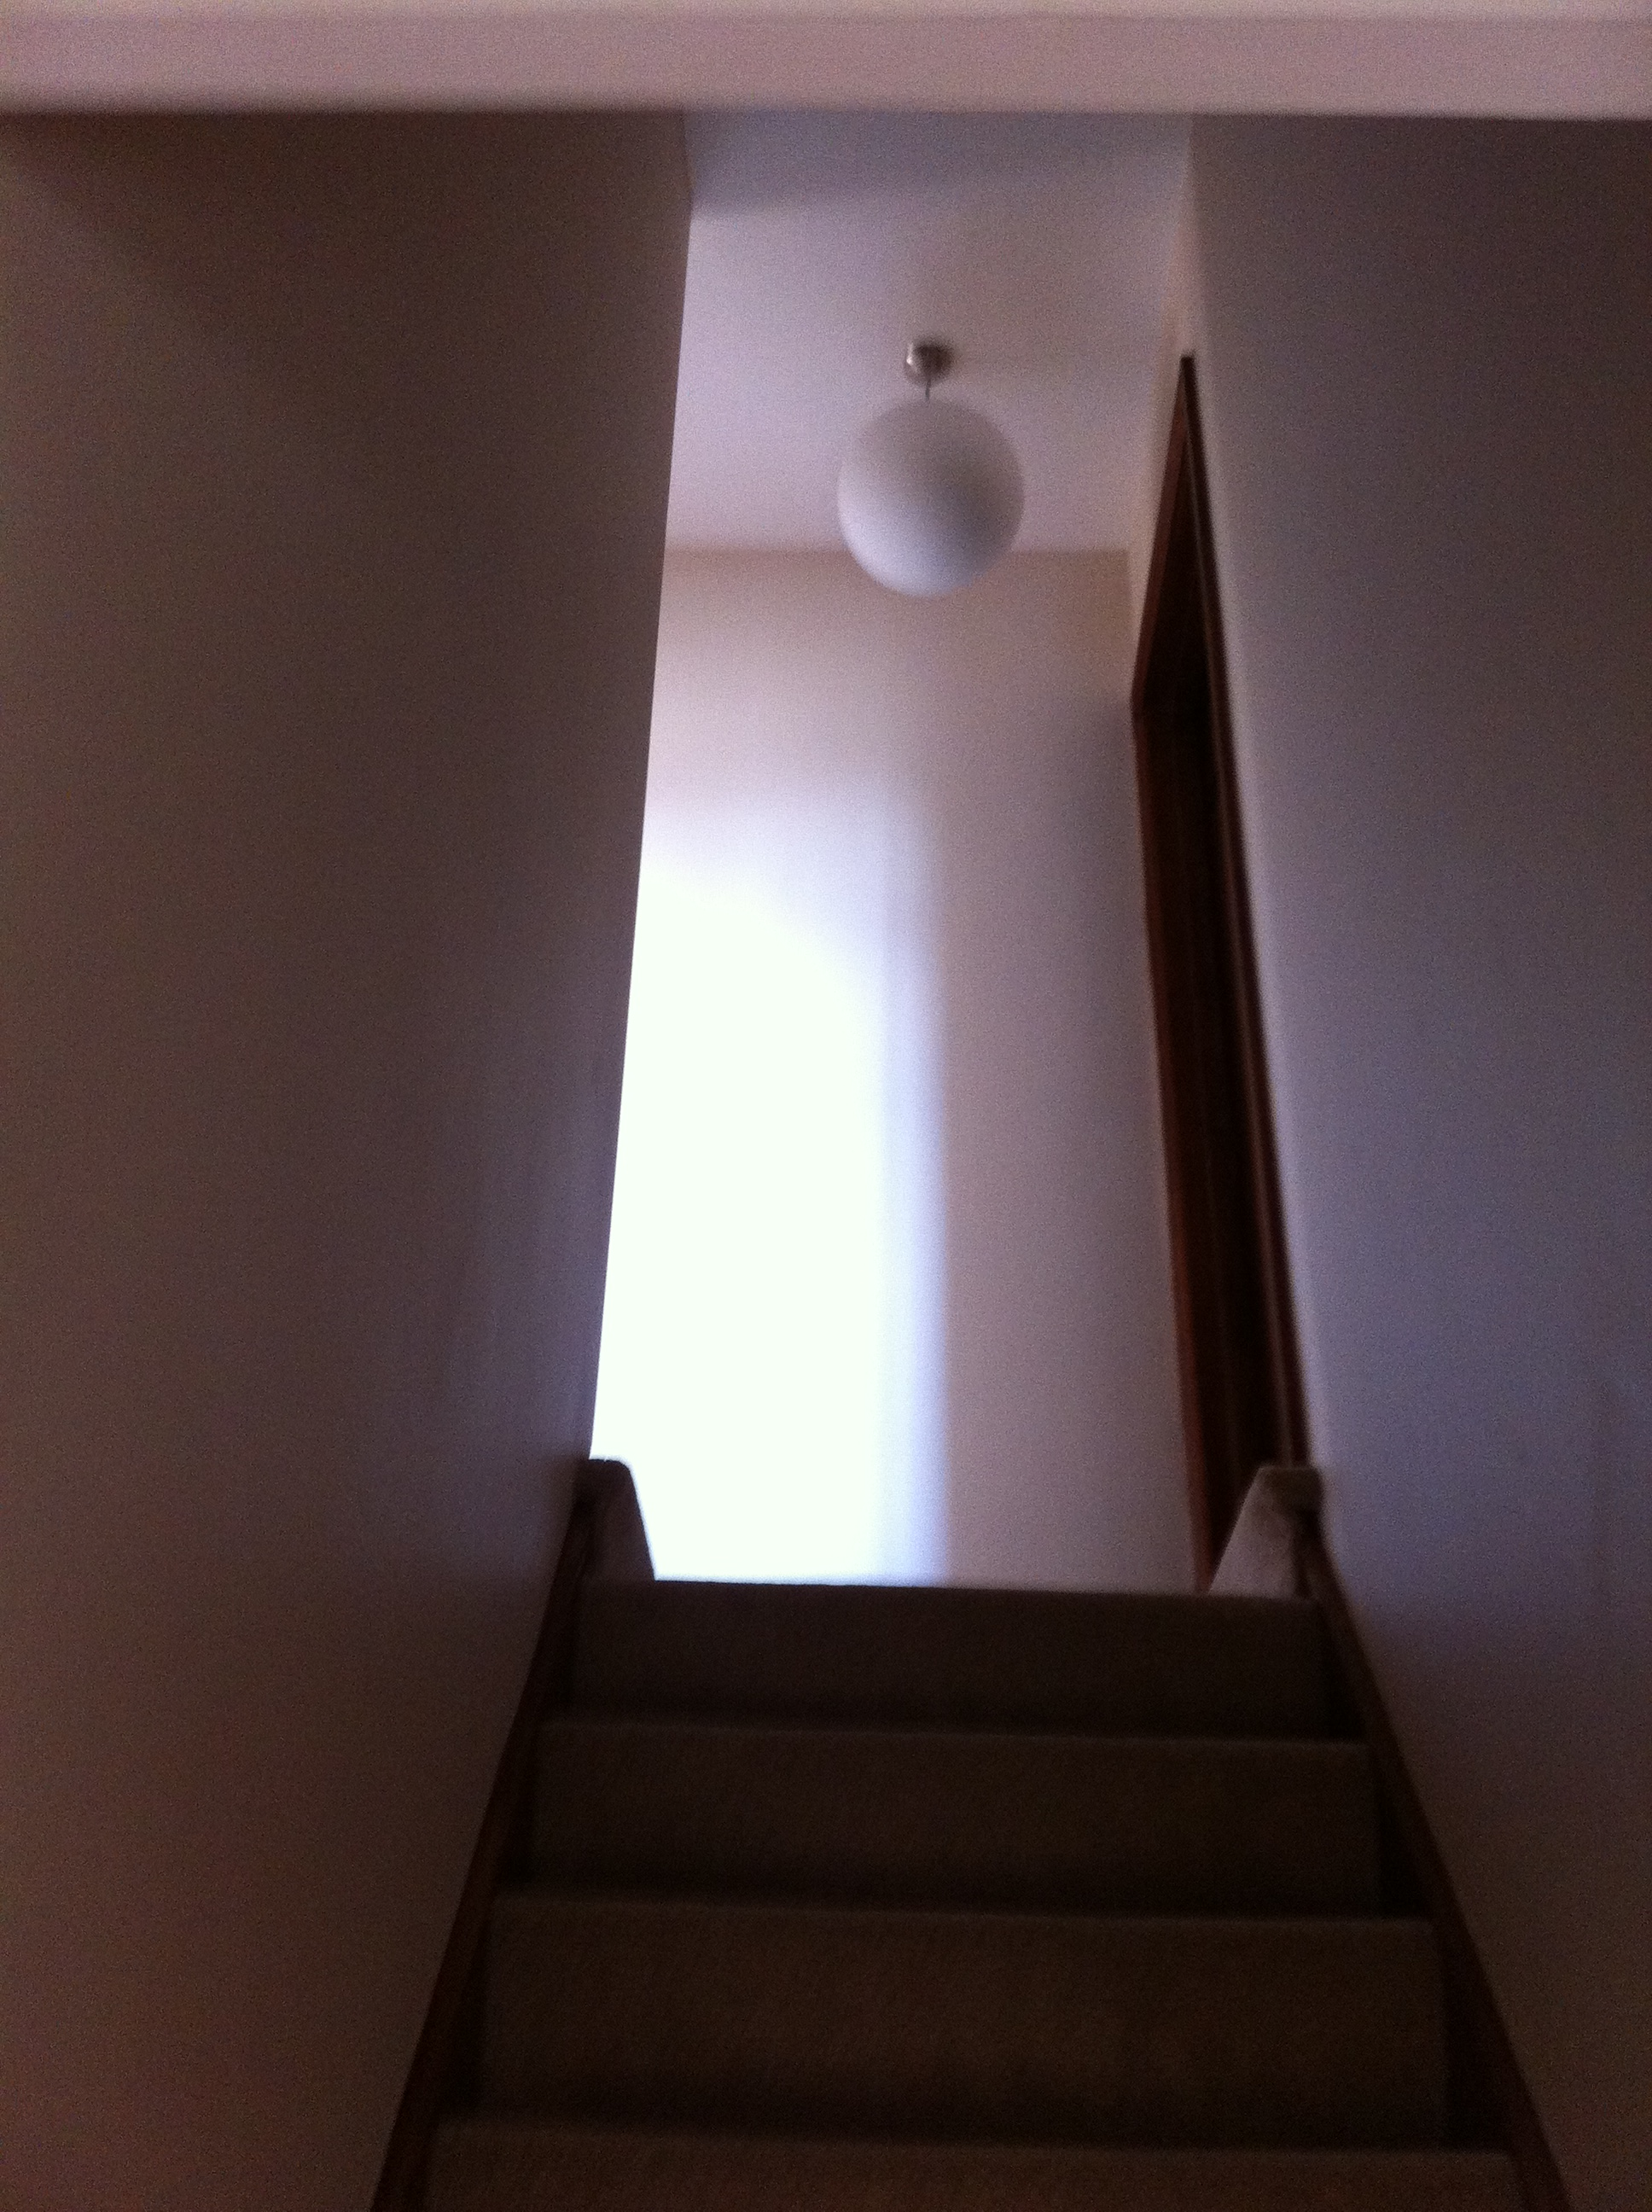 Plastering stair well